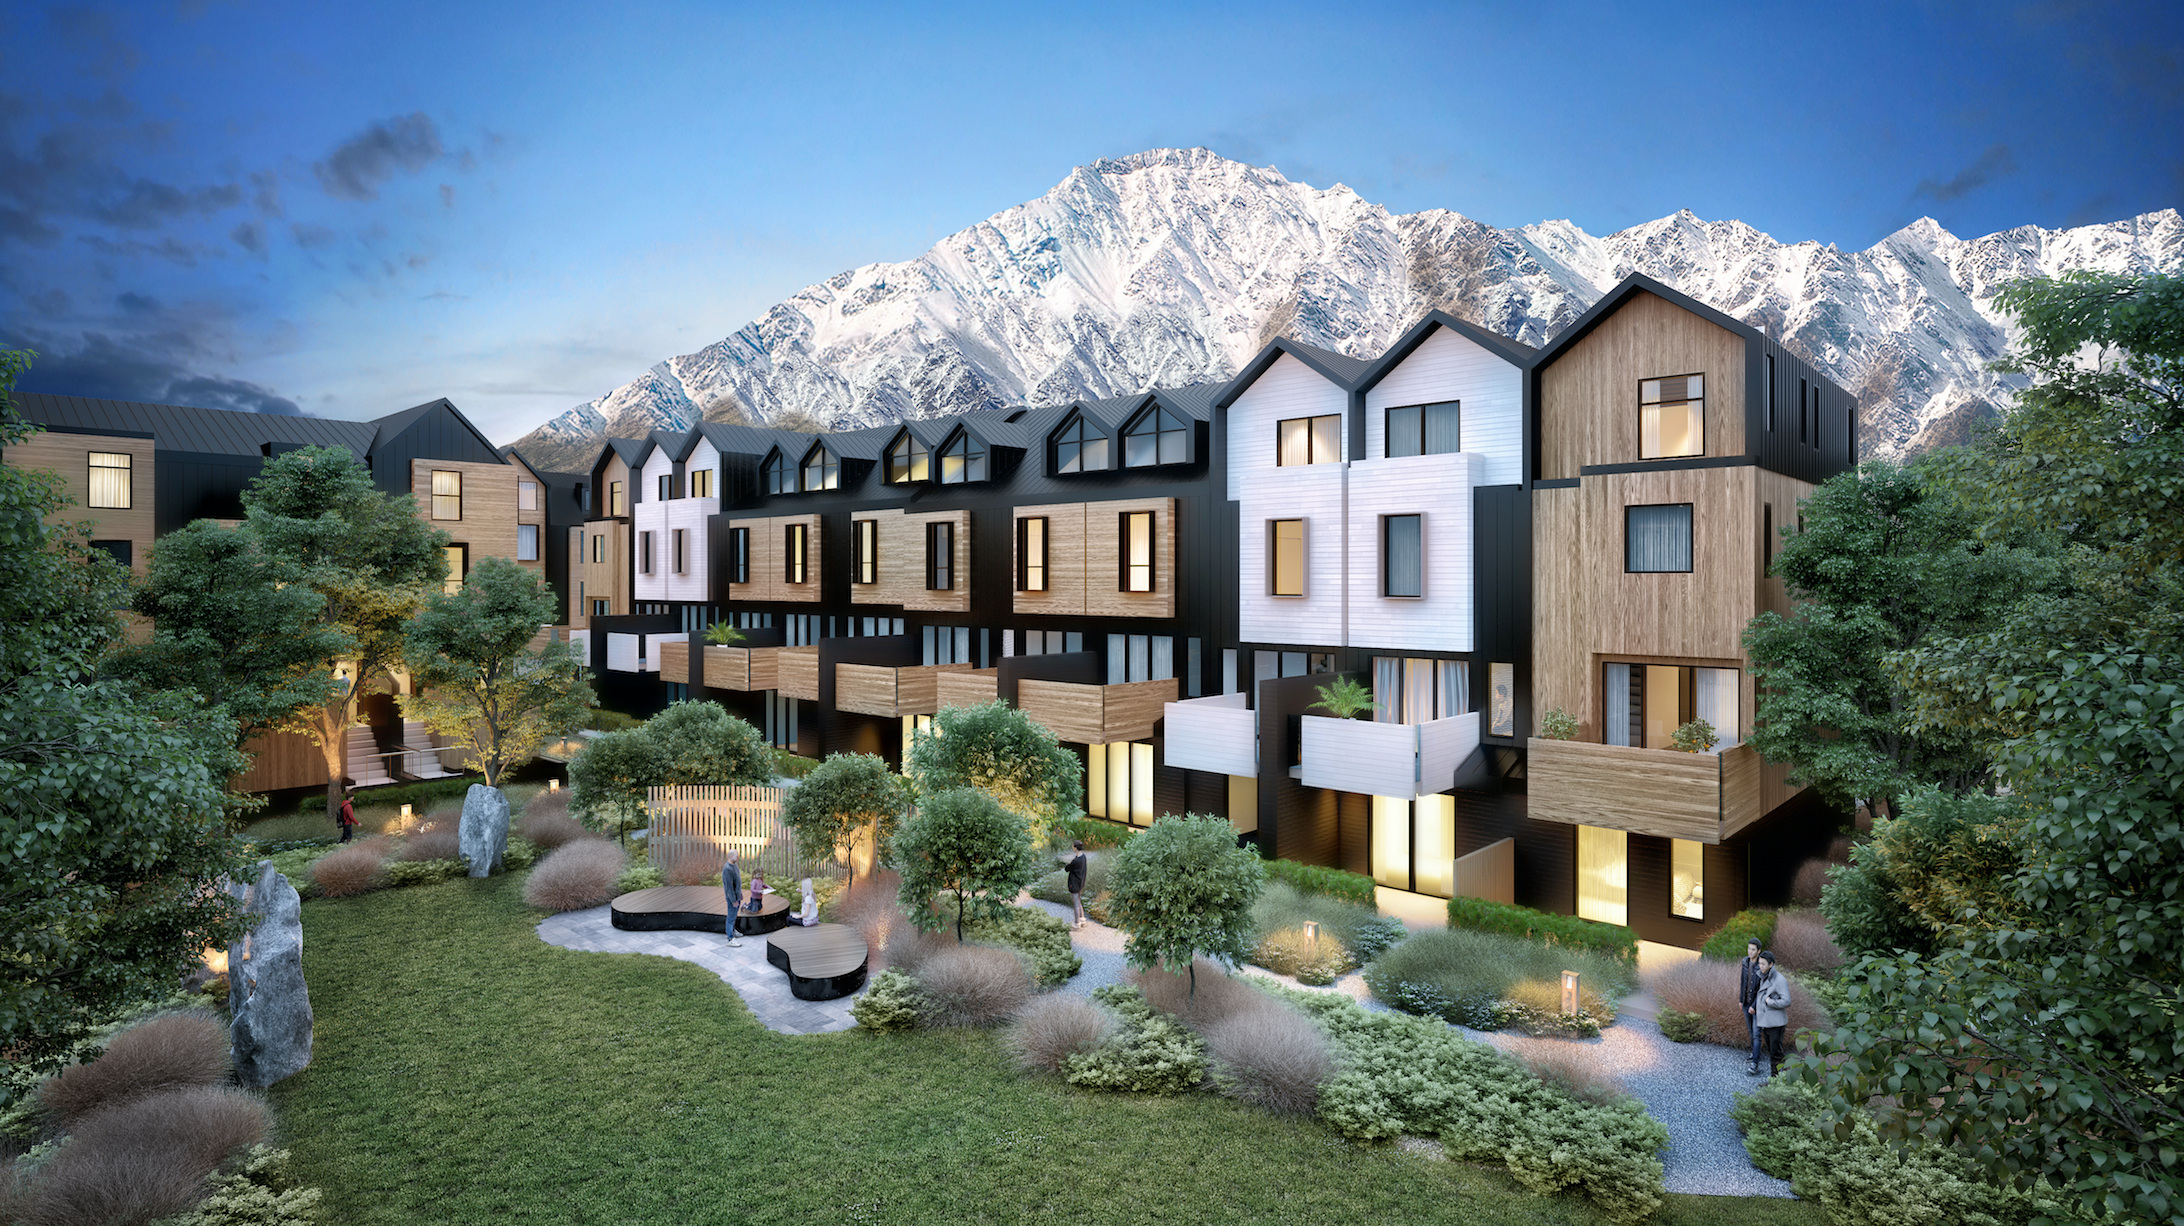 Remarkables Residences uses materials inspired by the local landscape and traditional architecture of the region, with dedicated park areas to draw the neighbourhood together.